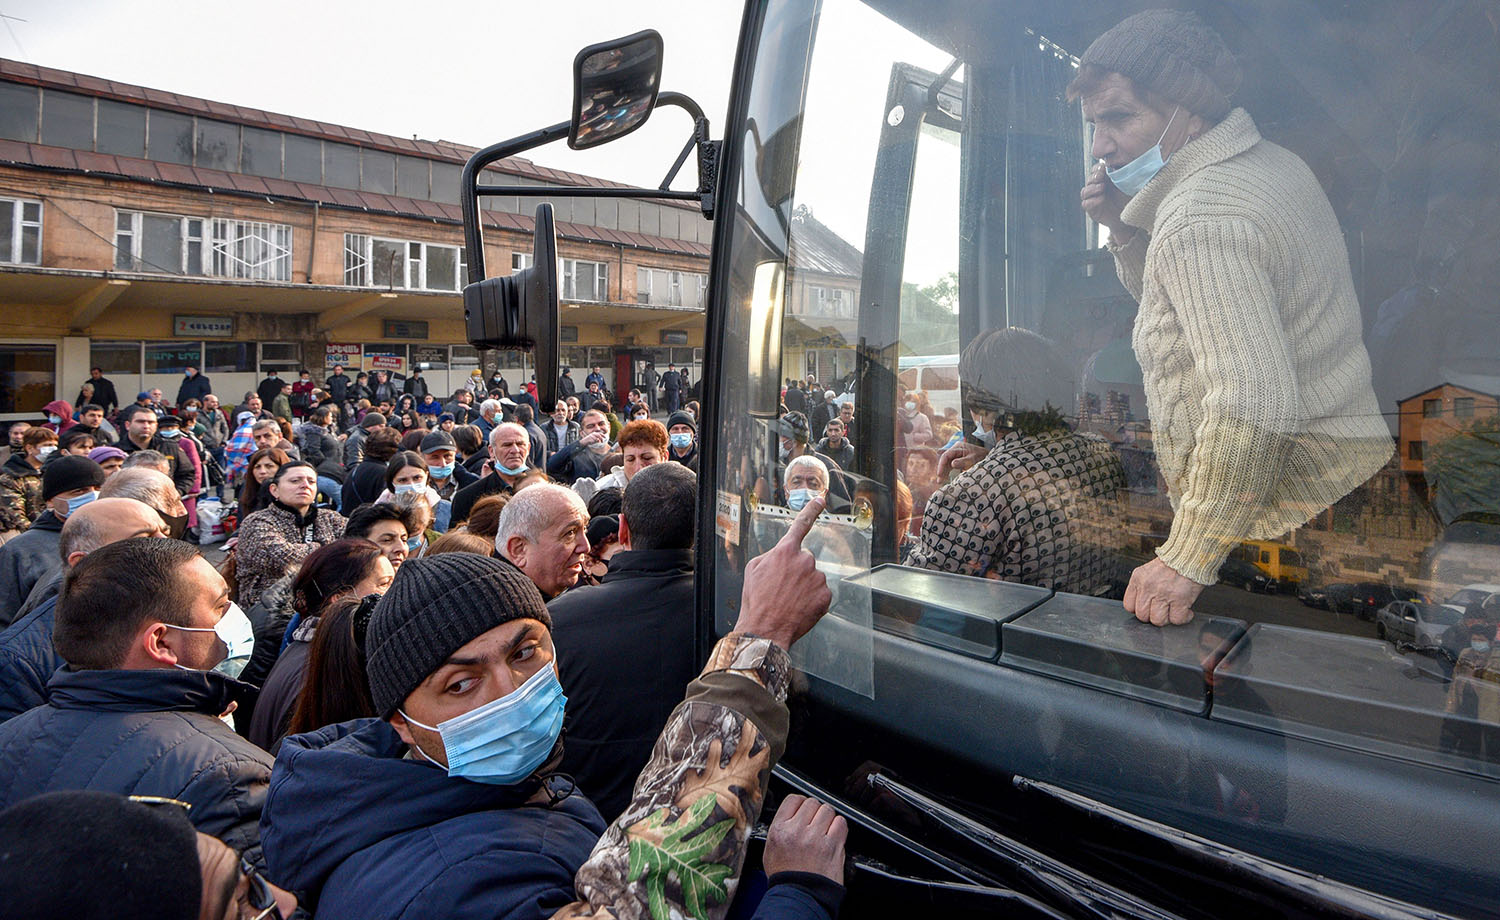 Refugees from the Nagorno-Karabakh region get in a bus in Yerevan, Armenia, heading to Stepanakert, the region's main city, on Nov. 17.